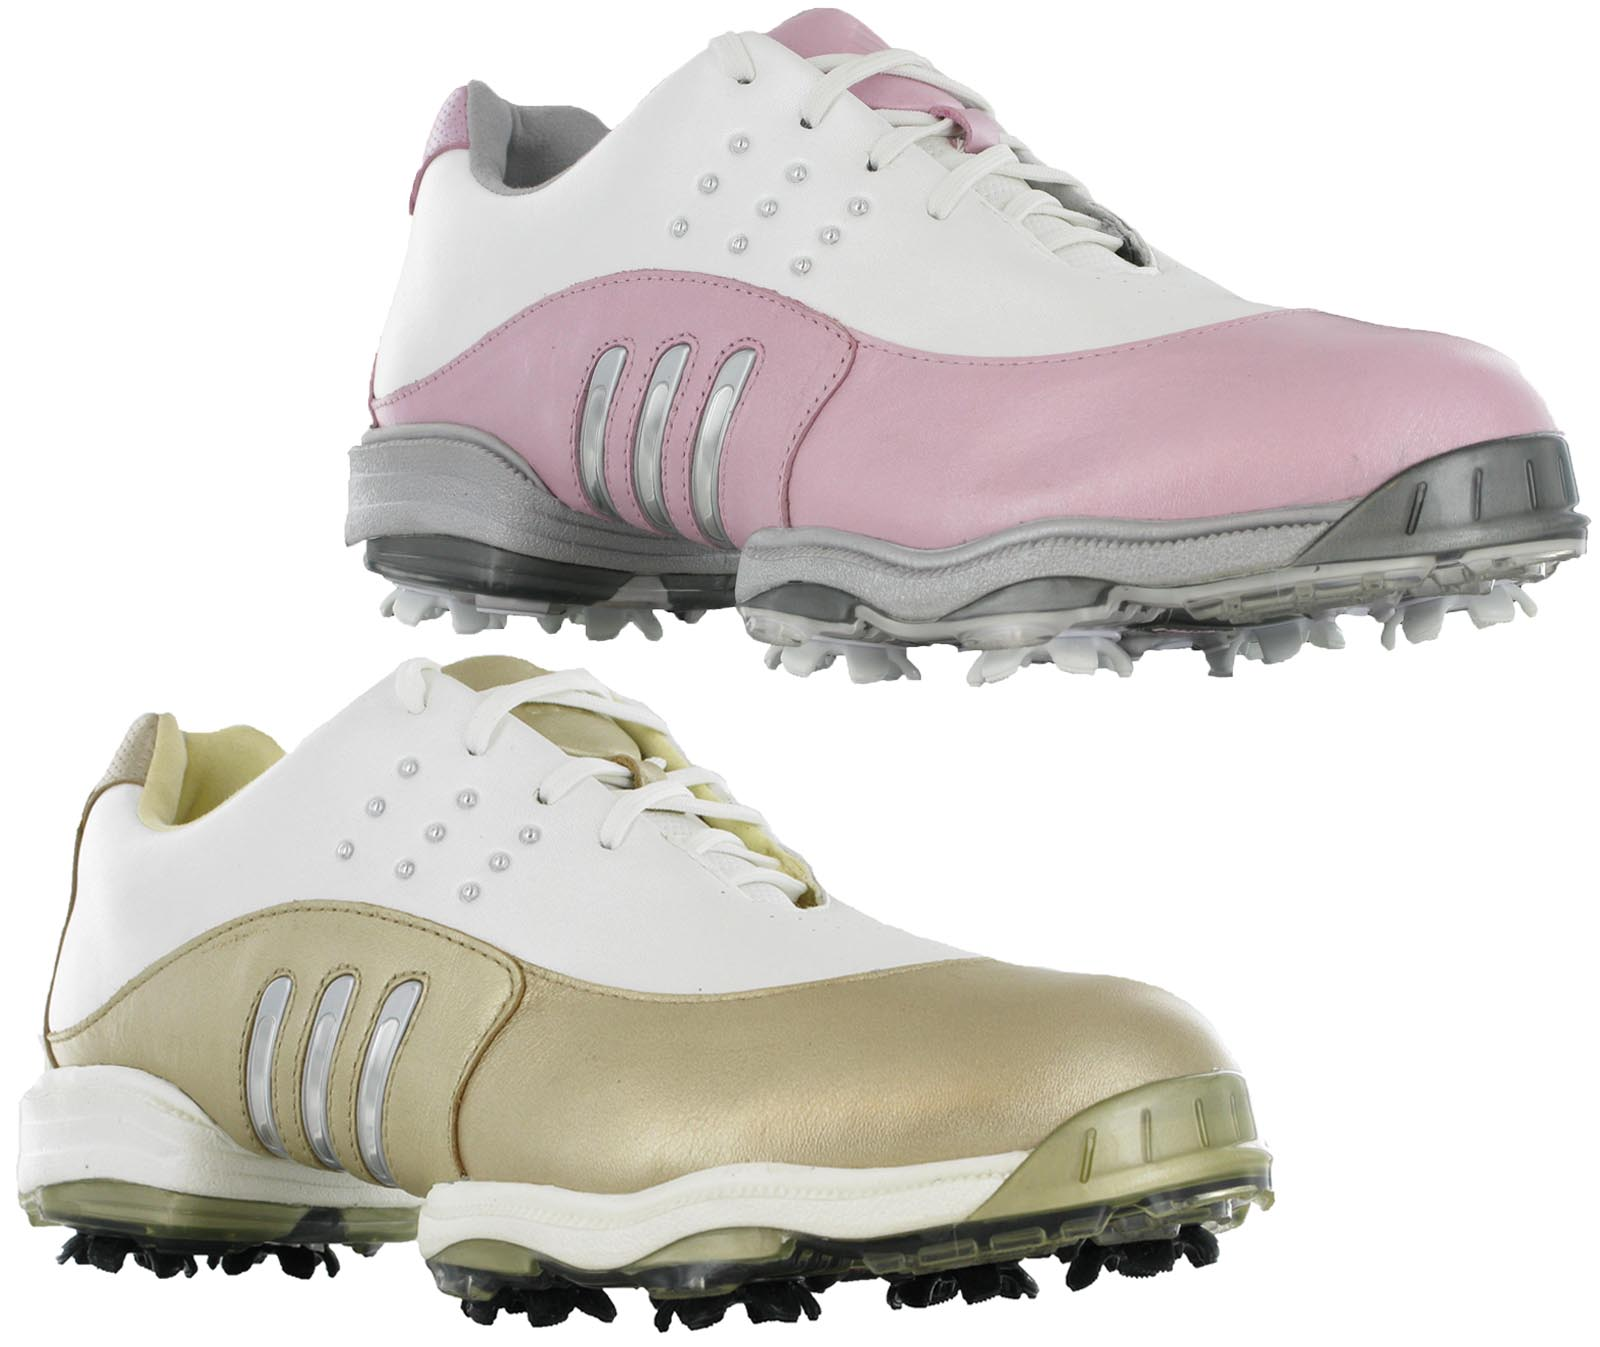 Metal Spikes Adidas Golf Shoes